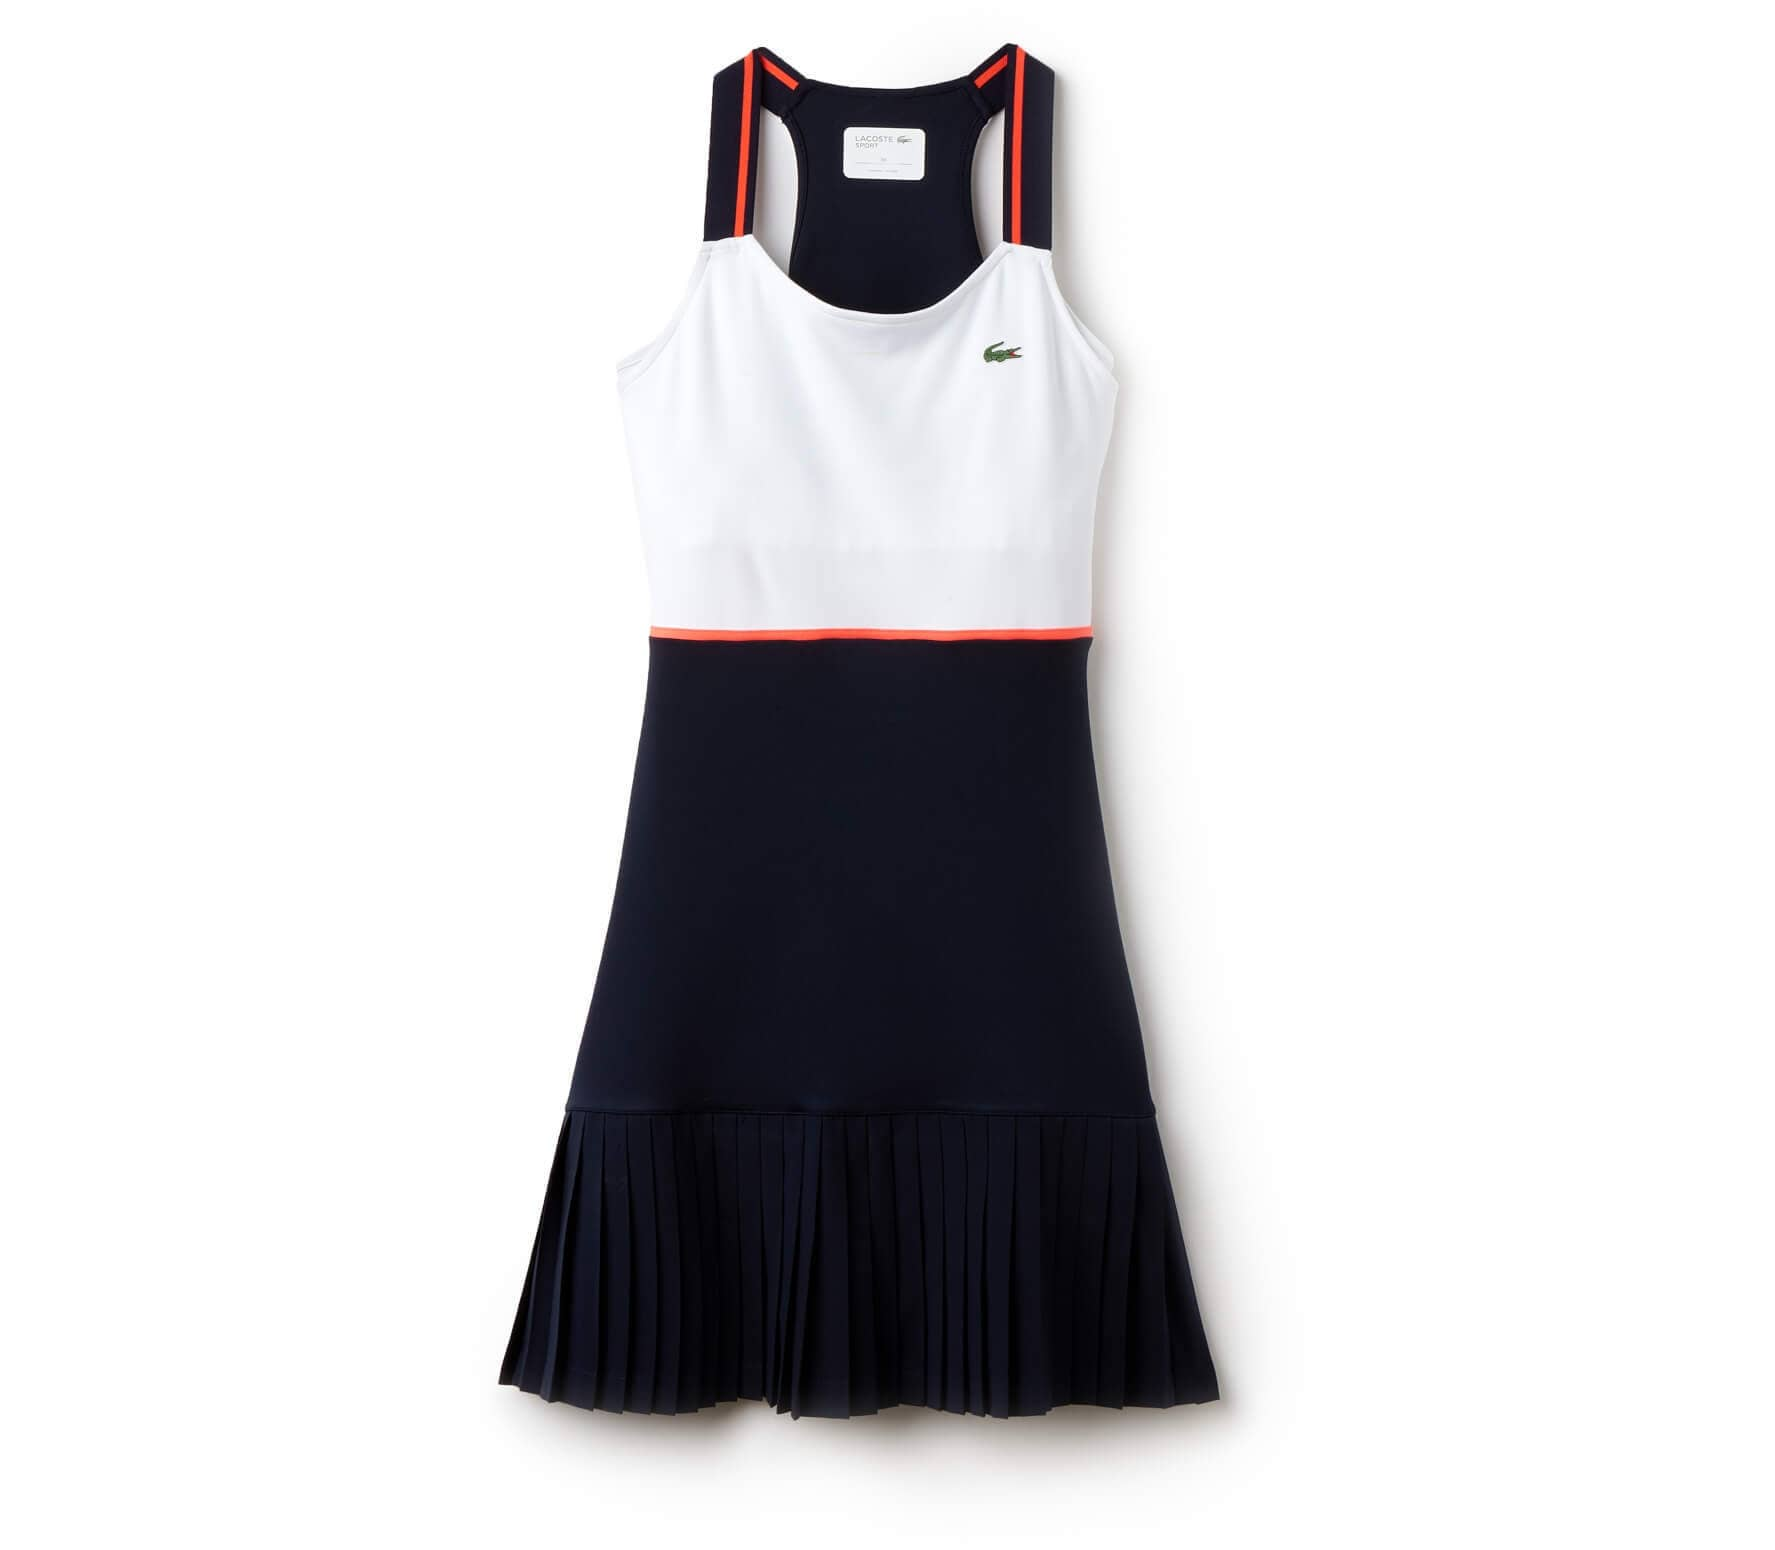 best service e3993 bd8a3 Lacoste 's tennis dress Damen